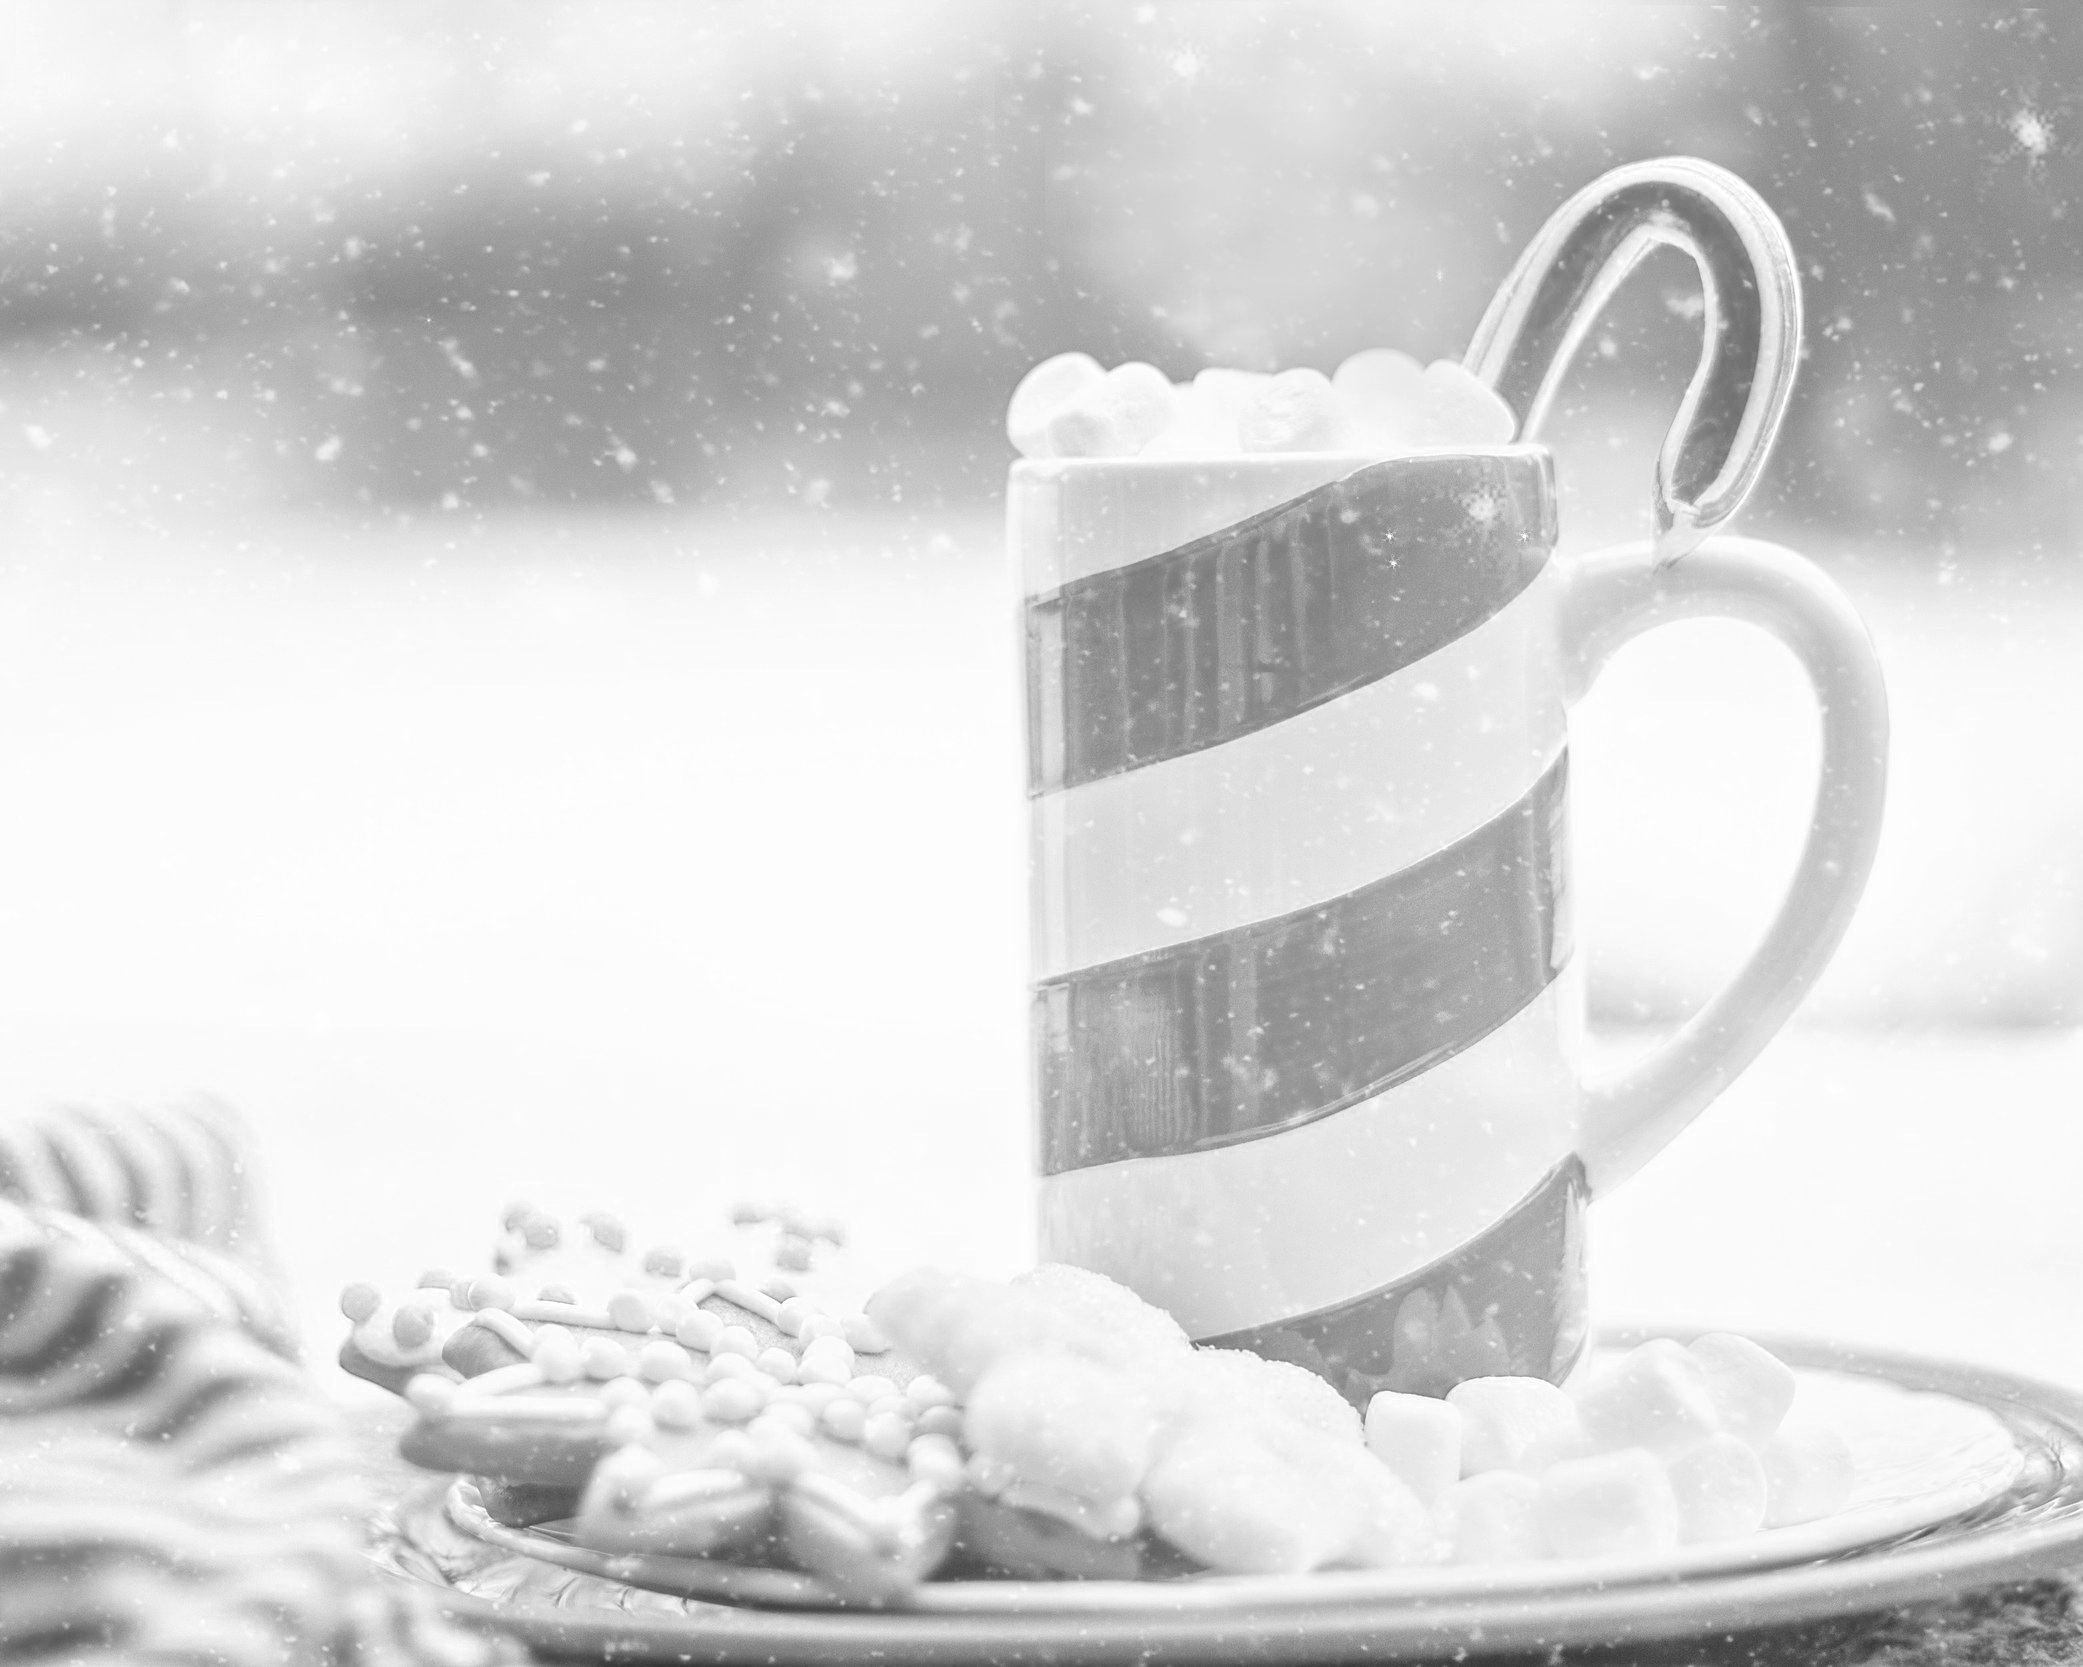 SELF-CARE DURING THE HOLIDAY SEASON - While it is always very important to recognize and appreciate happiness during the holidays, we must also take some time to be mindful of the difficulties that come for many LGBTQ folks during this time of the year.thetrevorproject.com